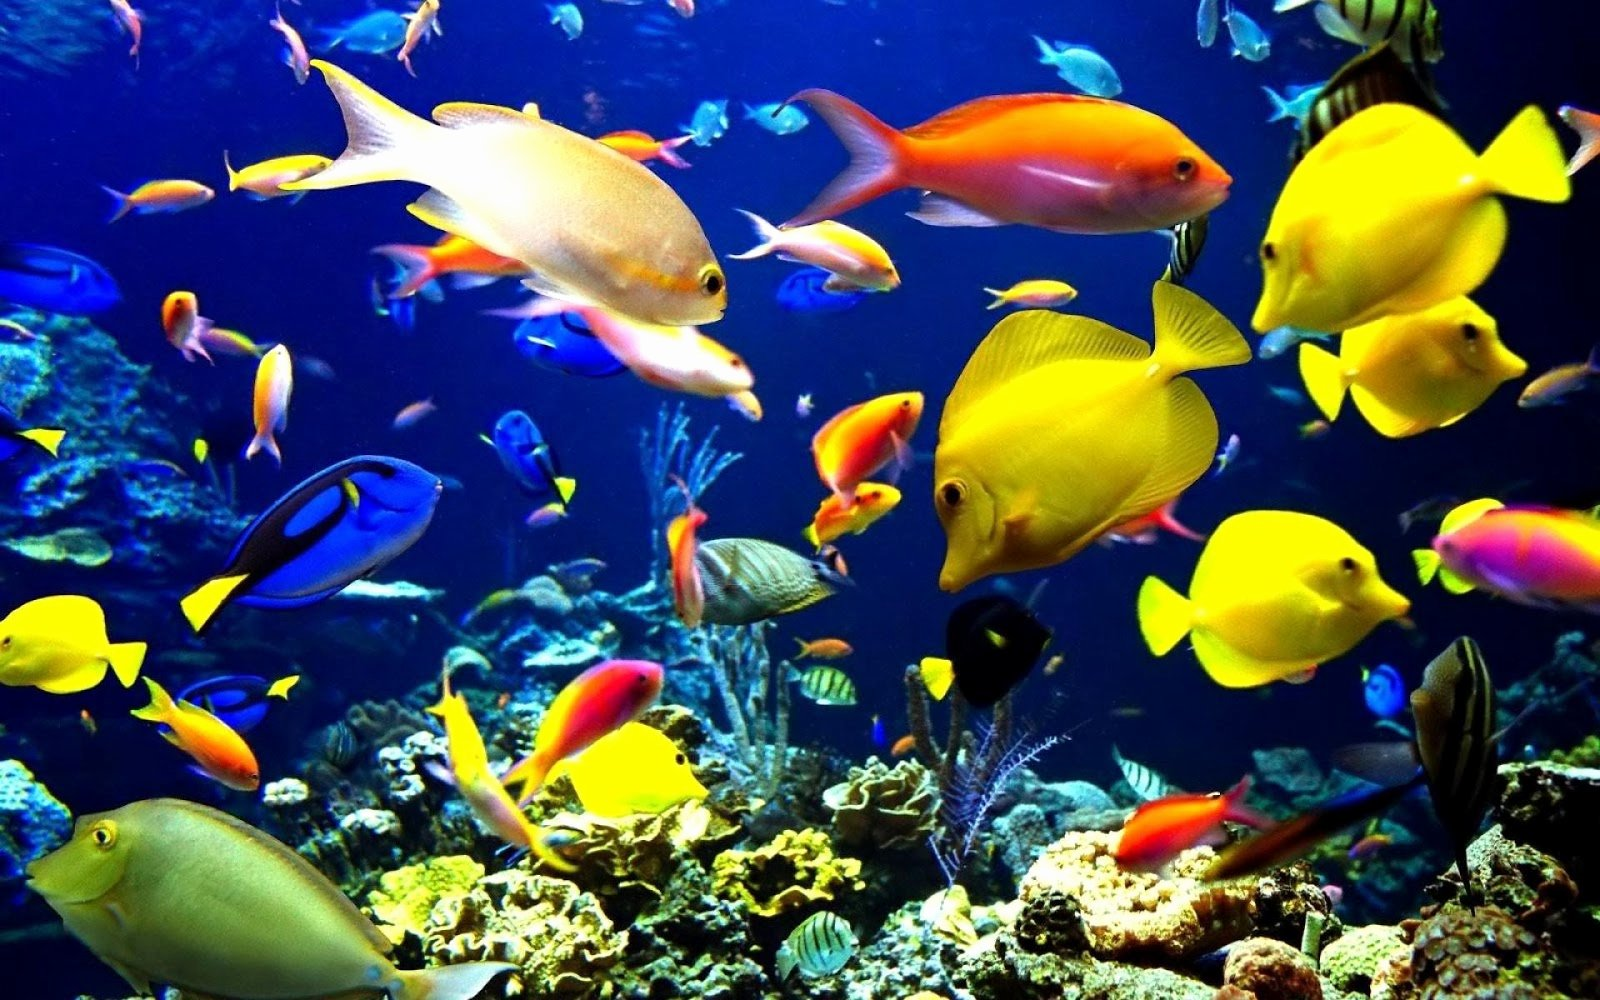 3d Fish Tank Wallpaper Luxury 20 Aquarium Hd Wallpapers and Freshwater Aquarium